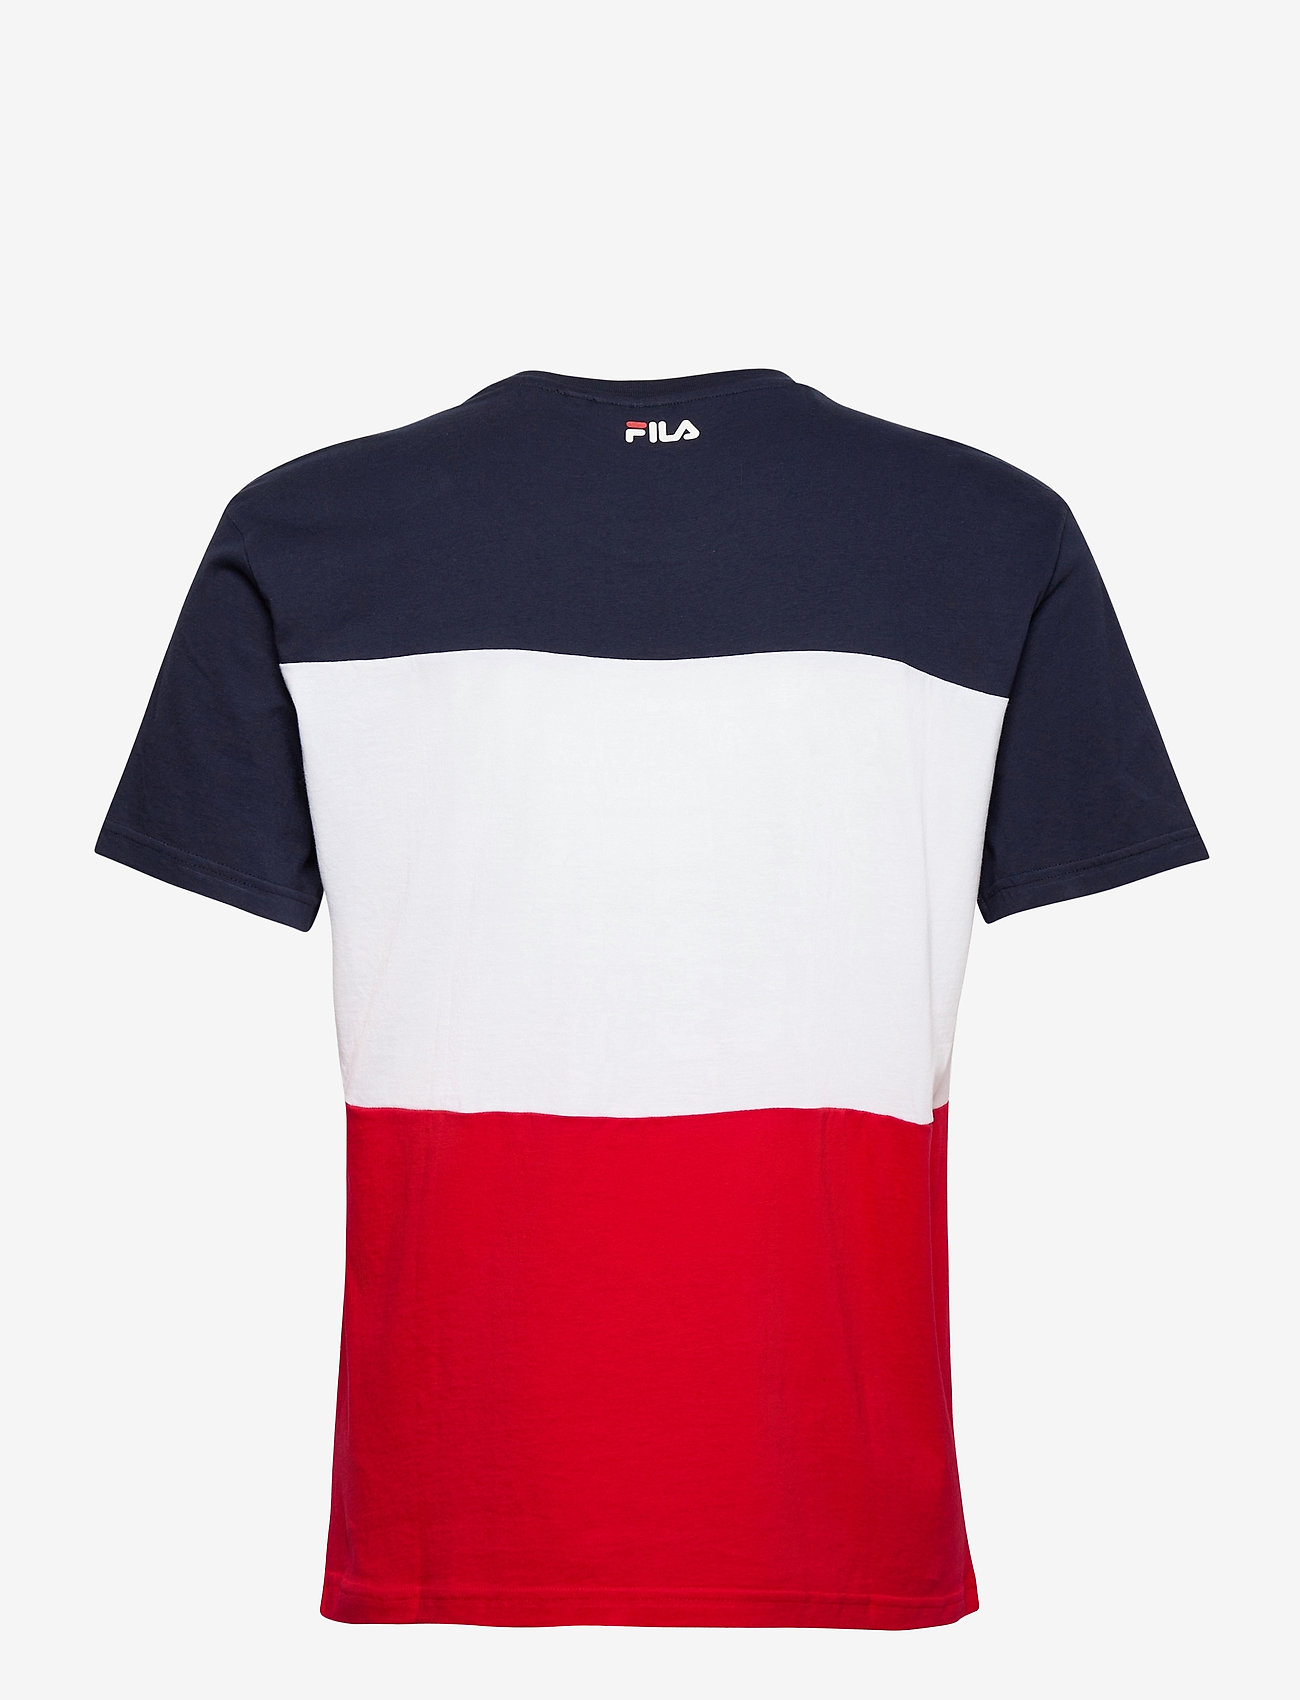 FILA DAY TEE - T-skjorter TRUE RED-BLACK IRIS-BRIGHT WHITE - Menn Klær